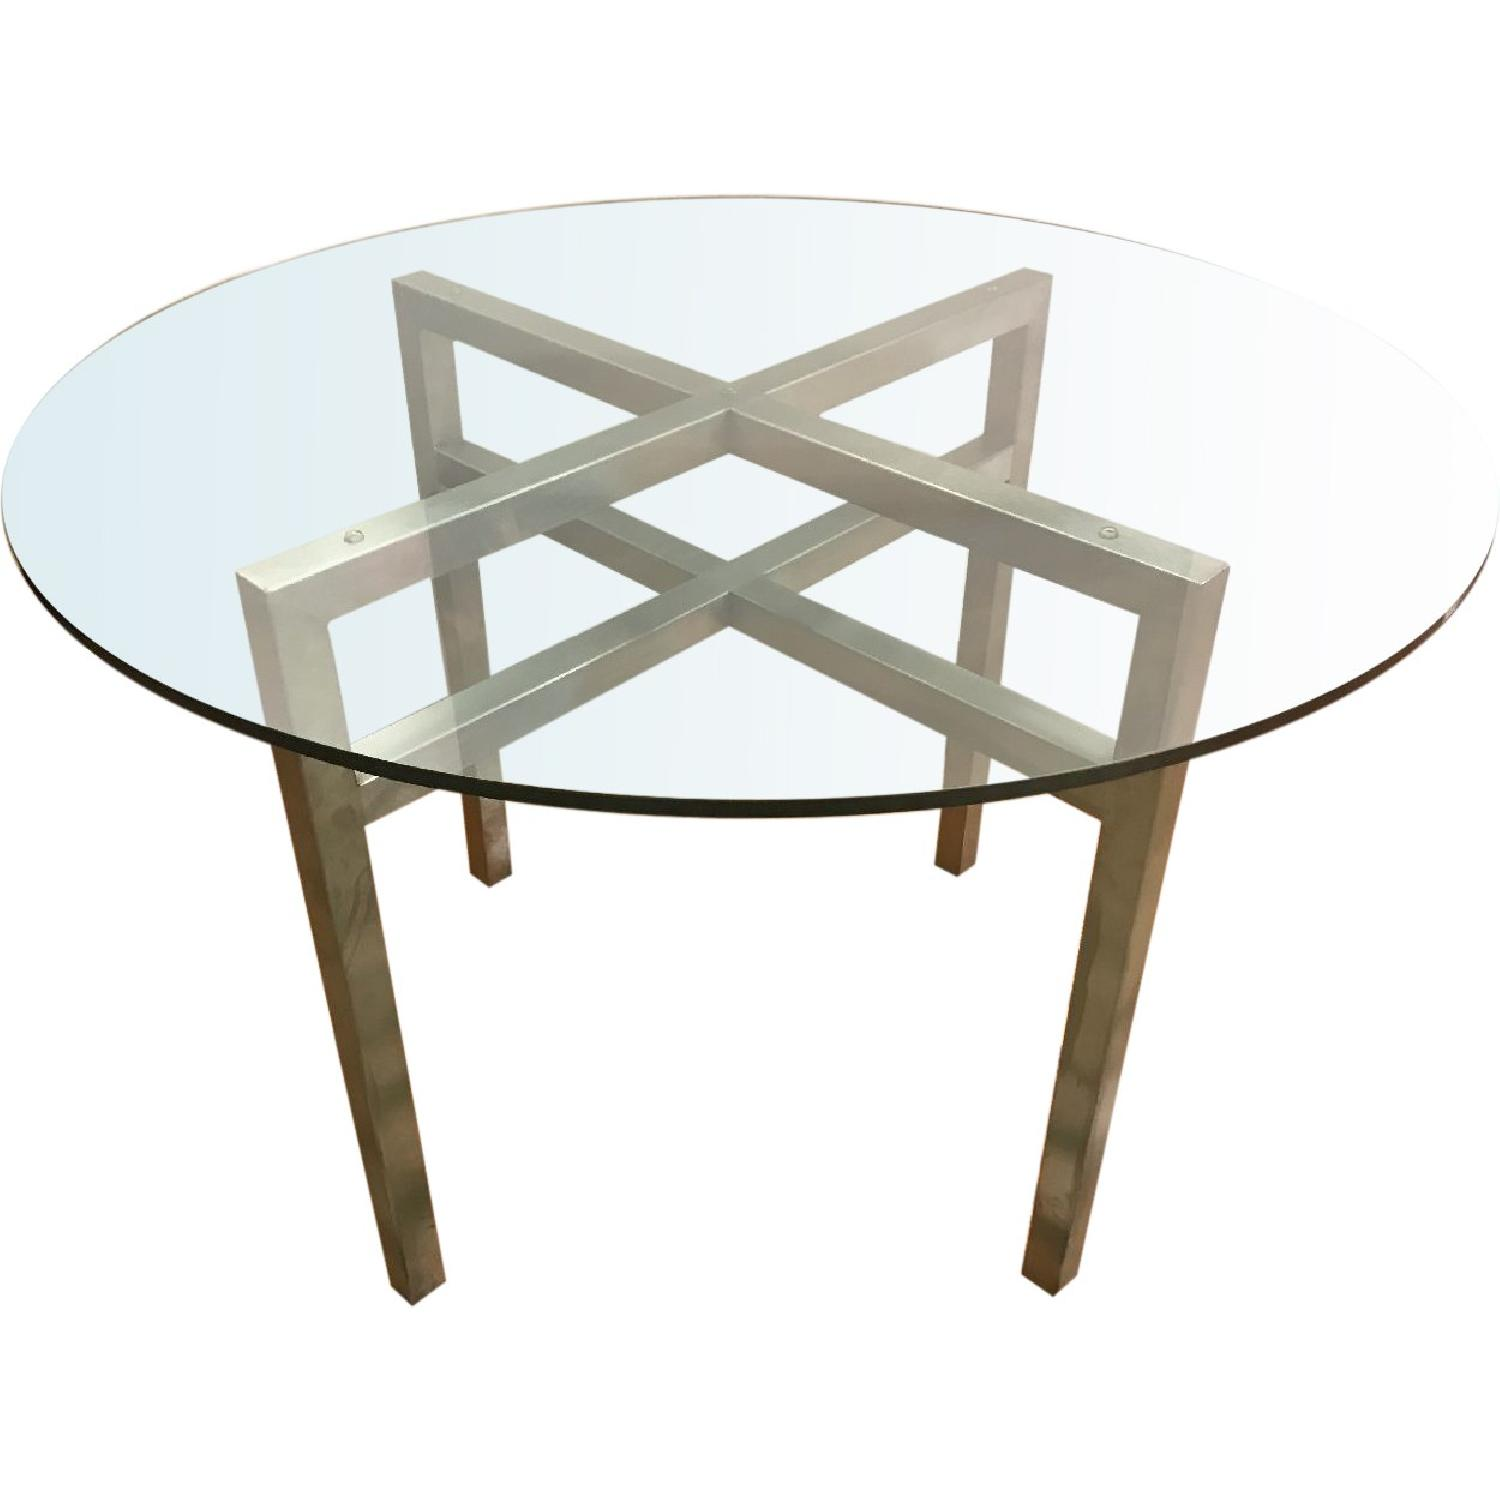 Room & Board Benson Dining Table in Stainless Steel & Glass - image-0